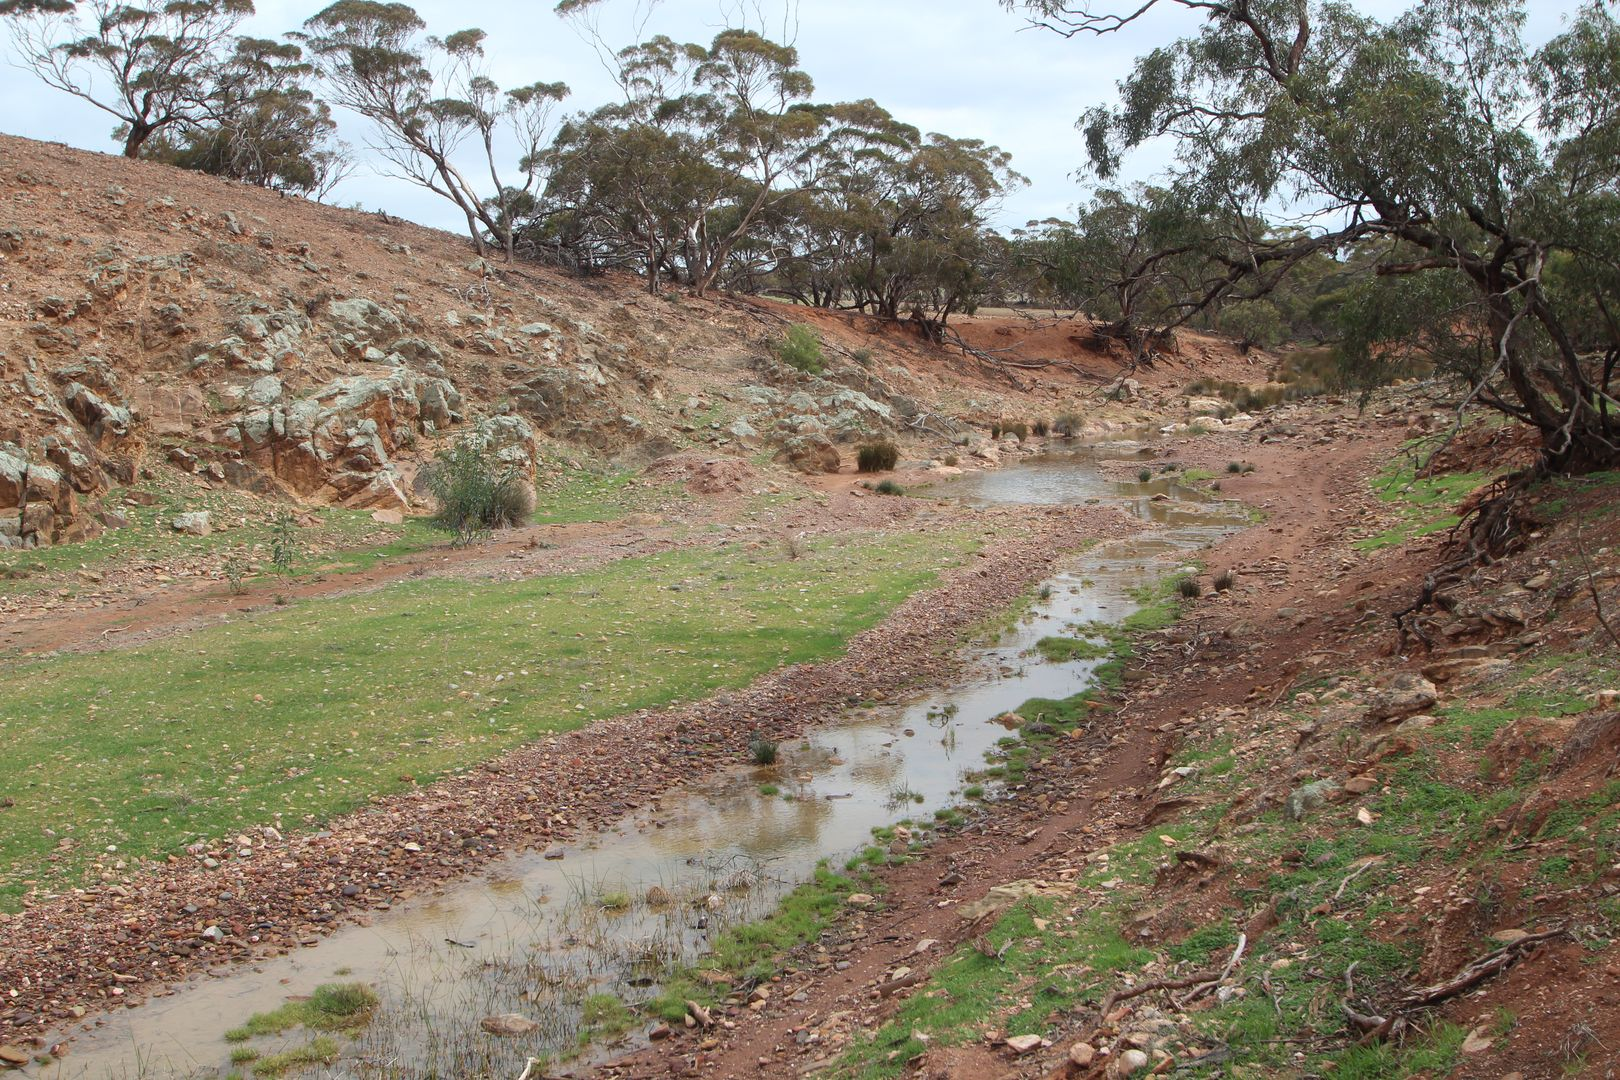 Lot 401 Section 401, North Hills Road, Dutton SA 5356, Image 0